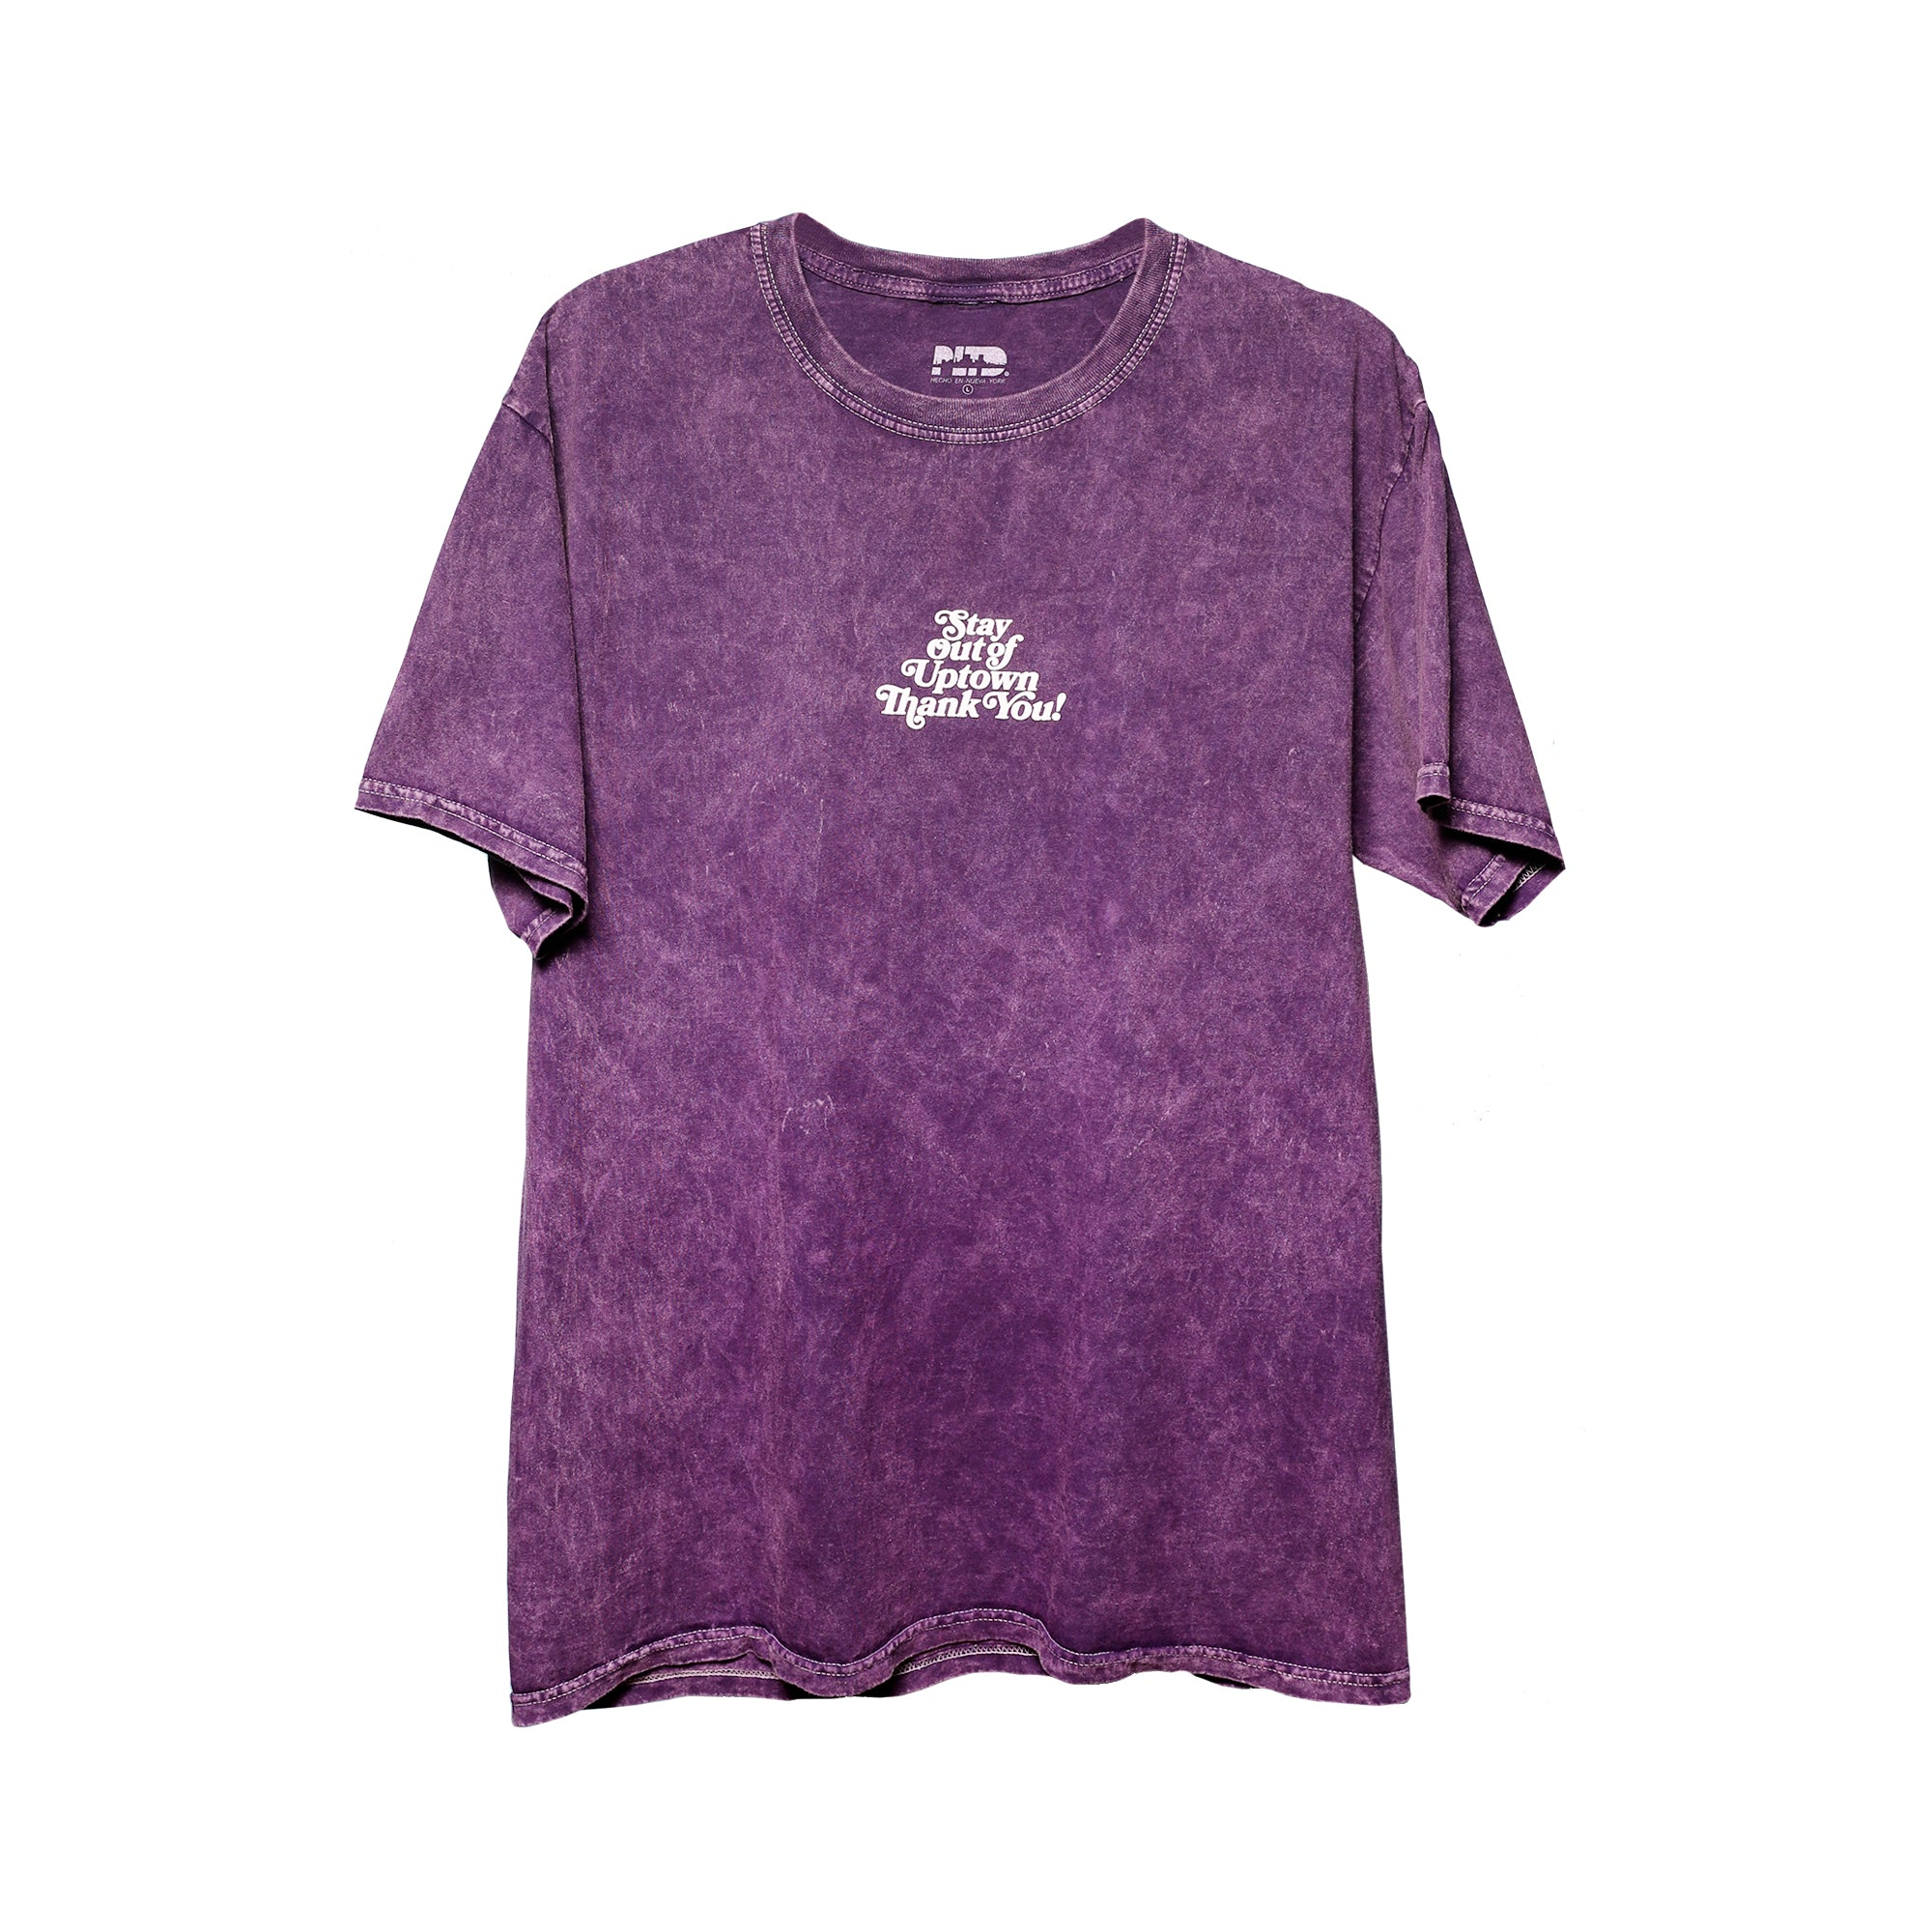 Stay Out of Uptown -  Amethyst Mineral Wash S/S